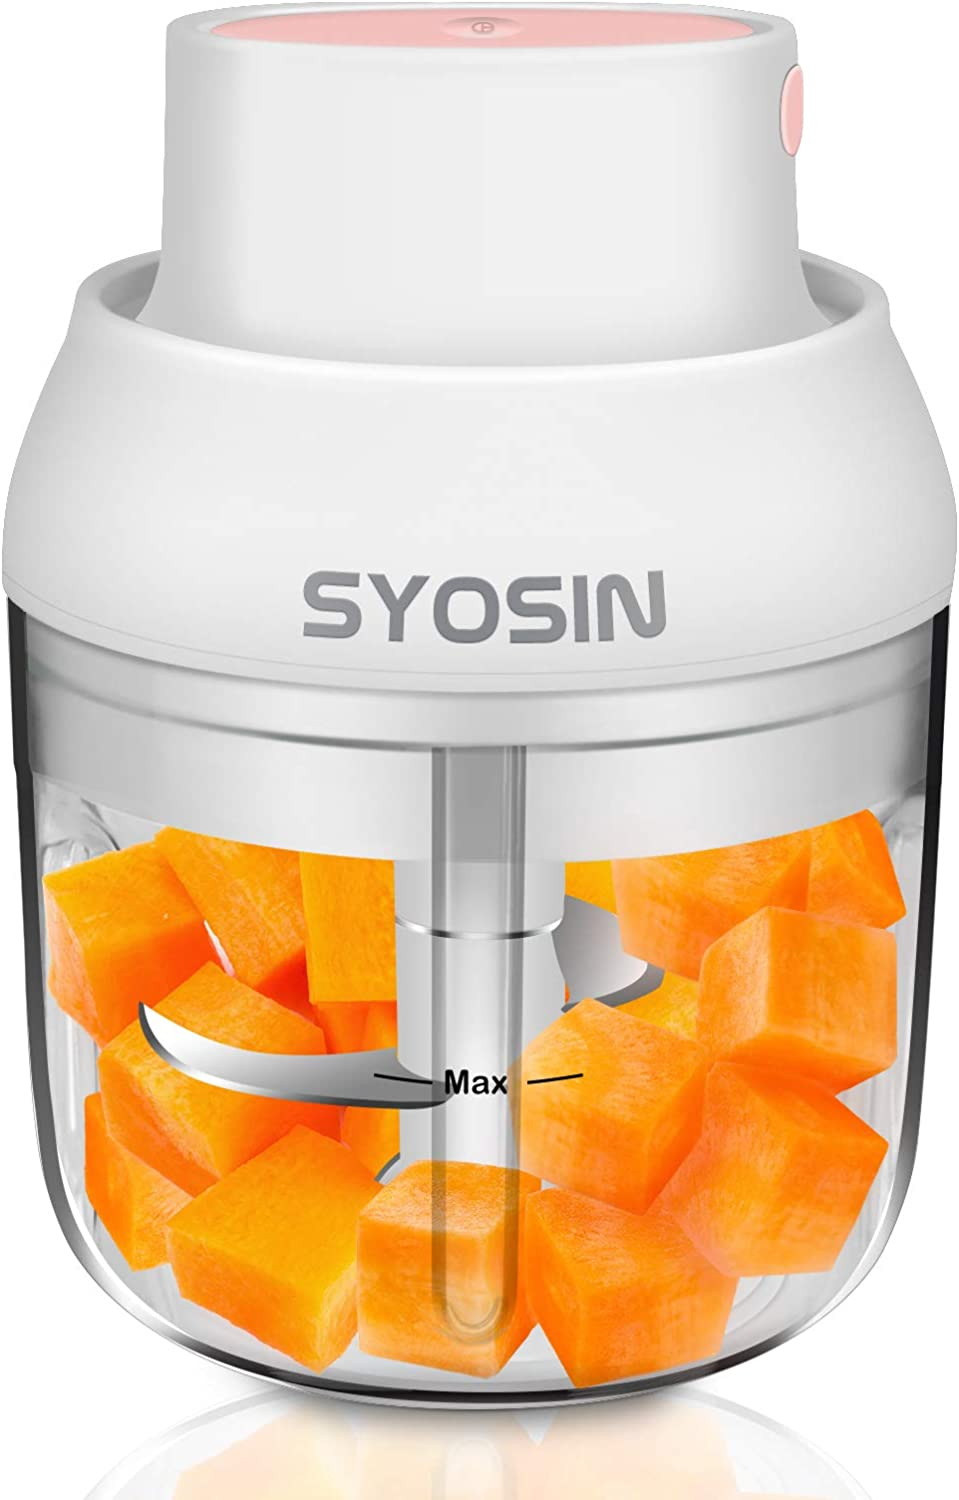 SYOSIN ELectric Mini Garlic Chopper, Food Chopper,Meat Blender,Portable Rechargeable Food Mincer chopper, Onion chopper,Vegetables chopper,Baby Food Mincer(White,250ml,45w)